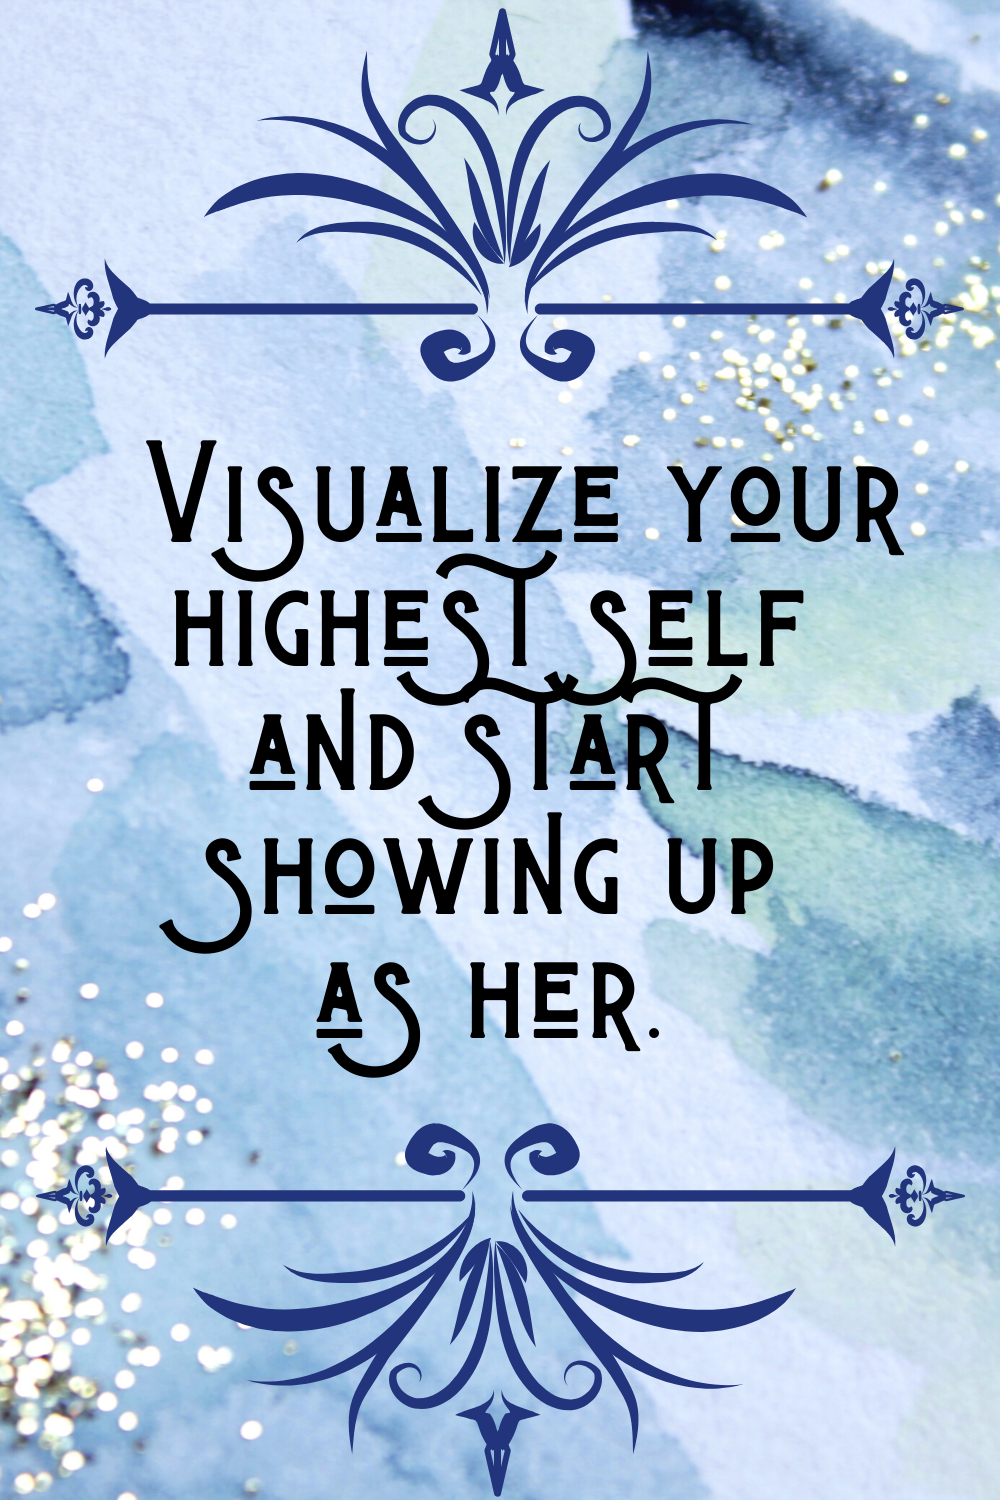 Visualize your highest self and start showing up as her.